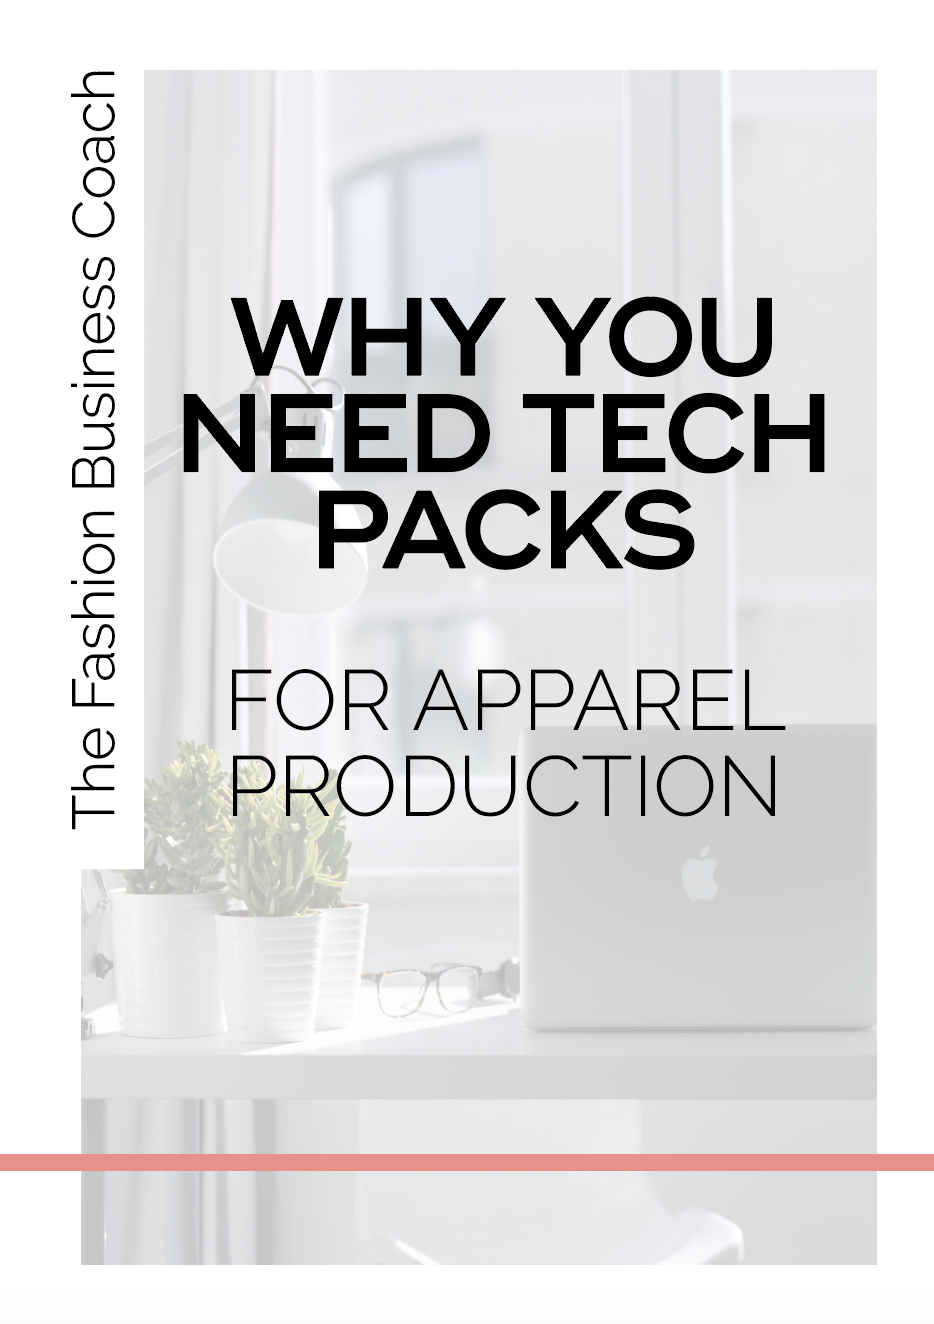 What Is A Tech Pack And Why You Need One For Apparel Production The Fashion Business Coach